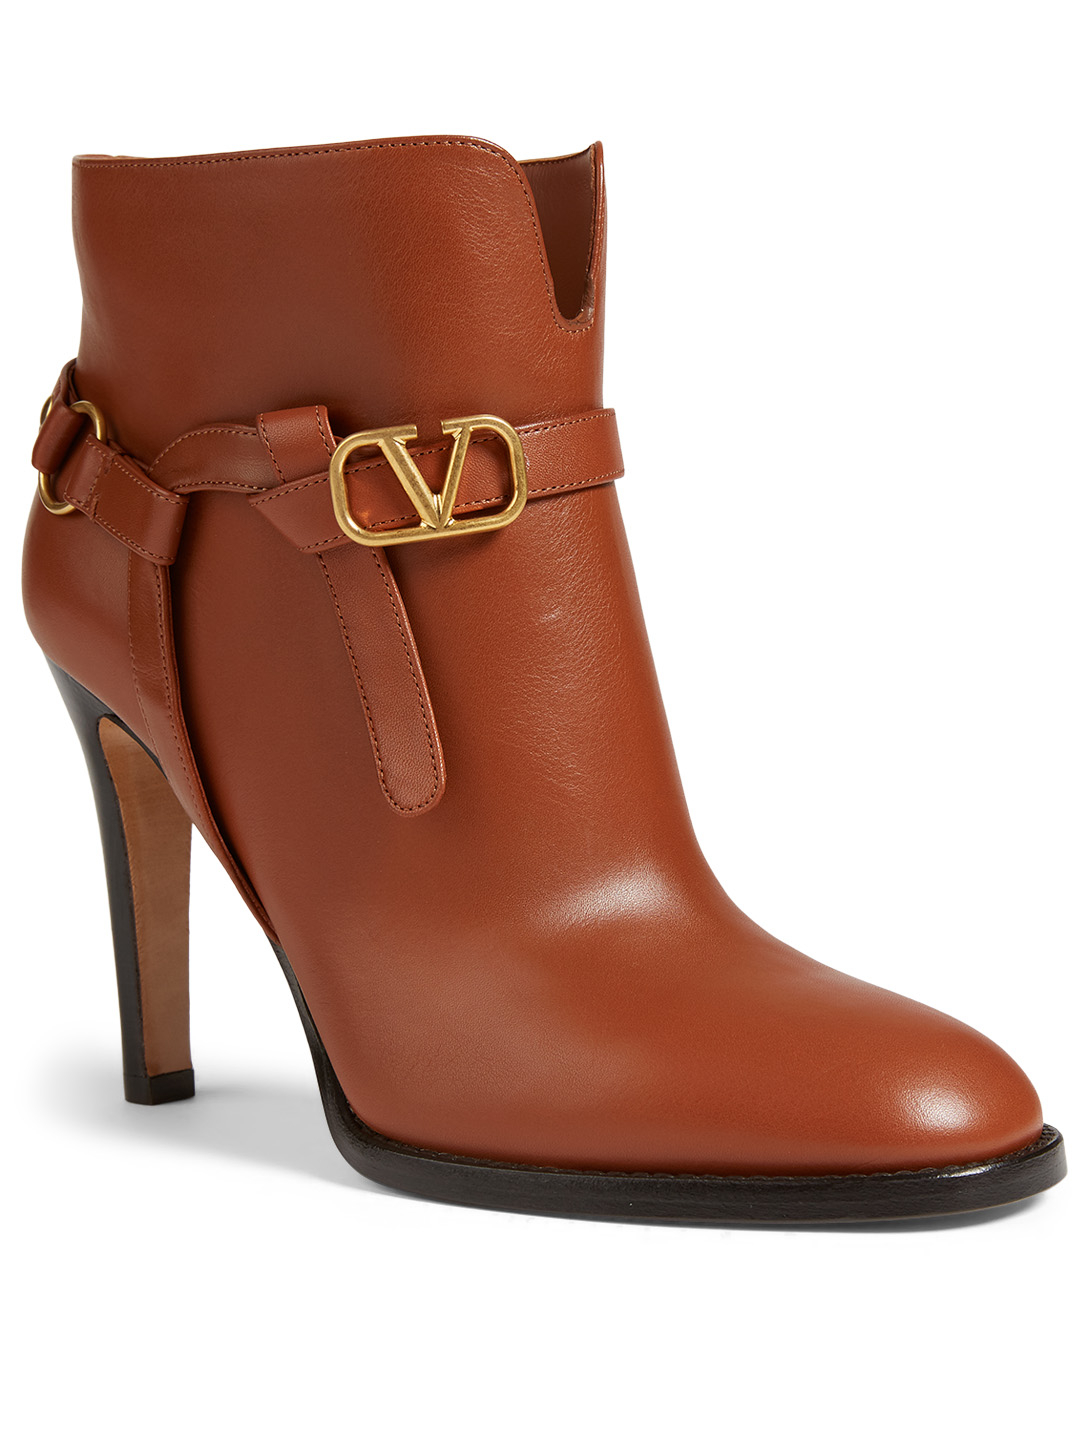 VALENTINO GARAVANI Leather Heeled Ankle Boots With VLOGO Belt Women's Brown